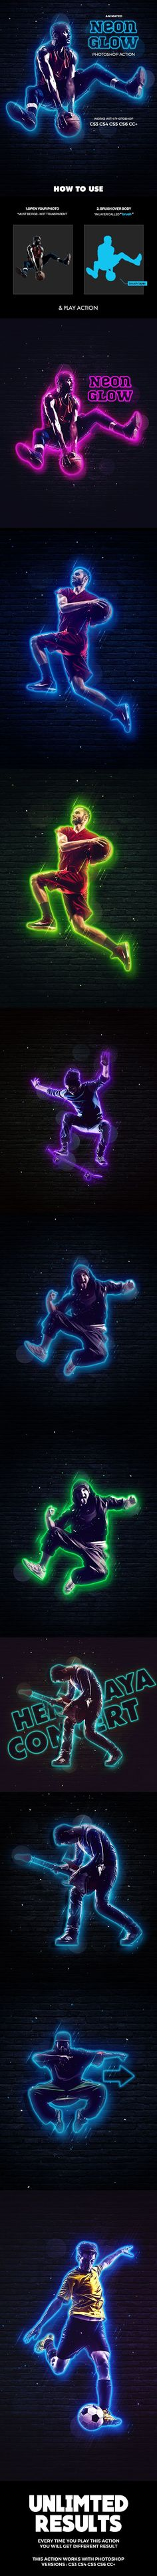 Neon Glow Photoshop Action Animated — Photoshop ATN #action #sparks • Available here ➝ https://graphicriver.net/item/neon-glow-photoshop-action-animated/21048909?ref=pxcr